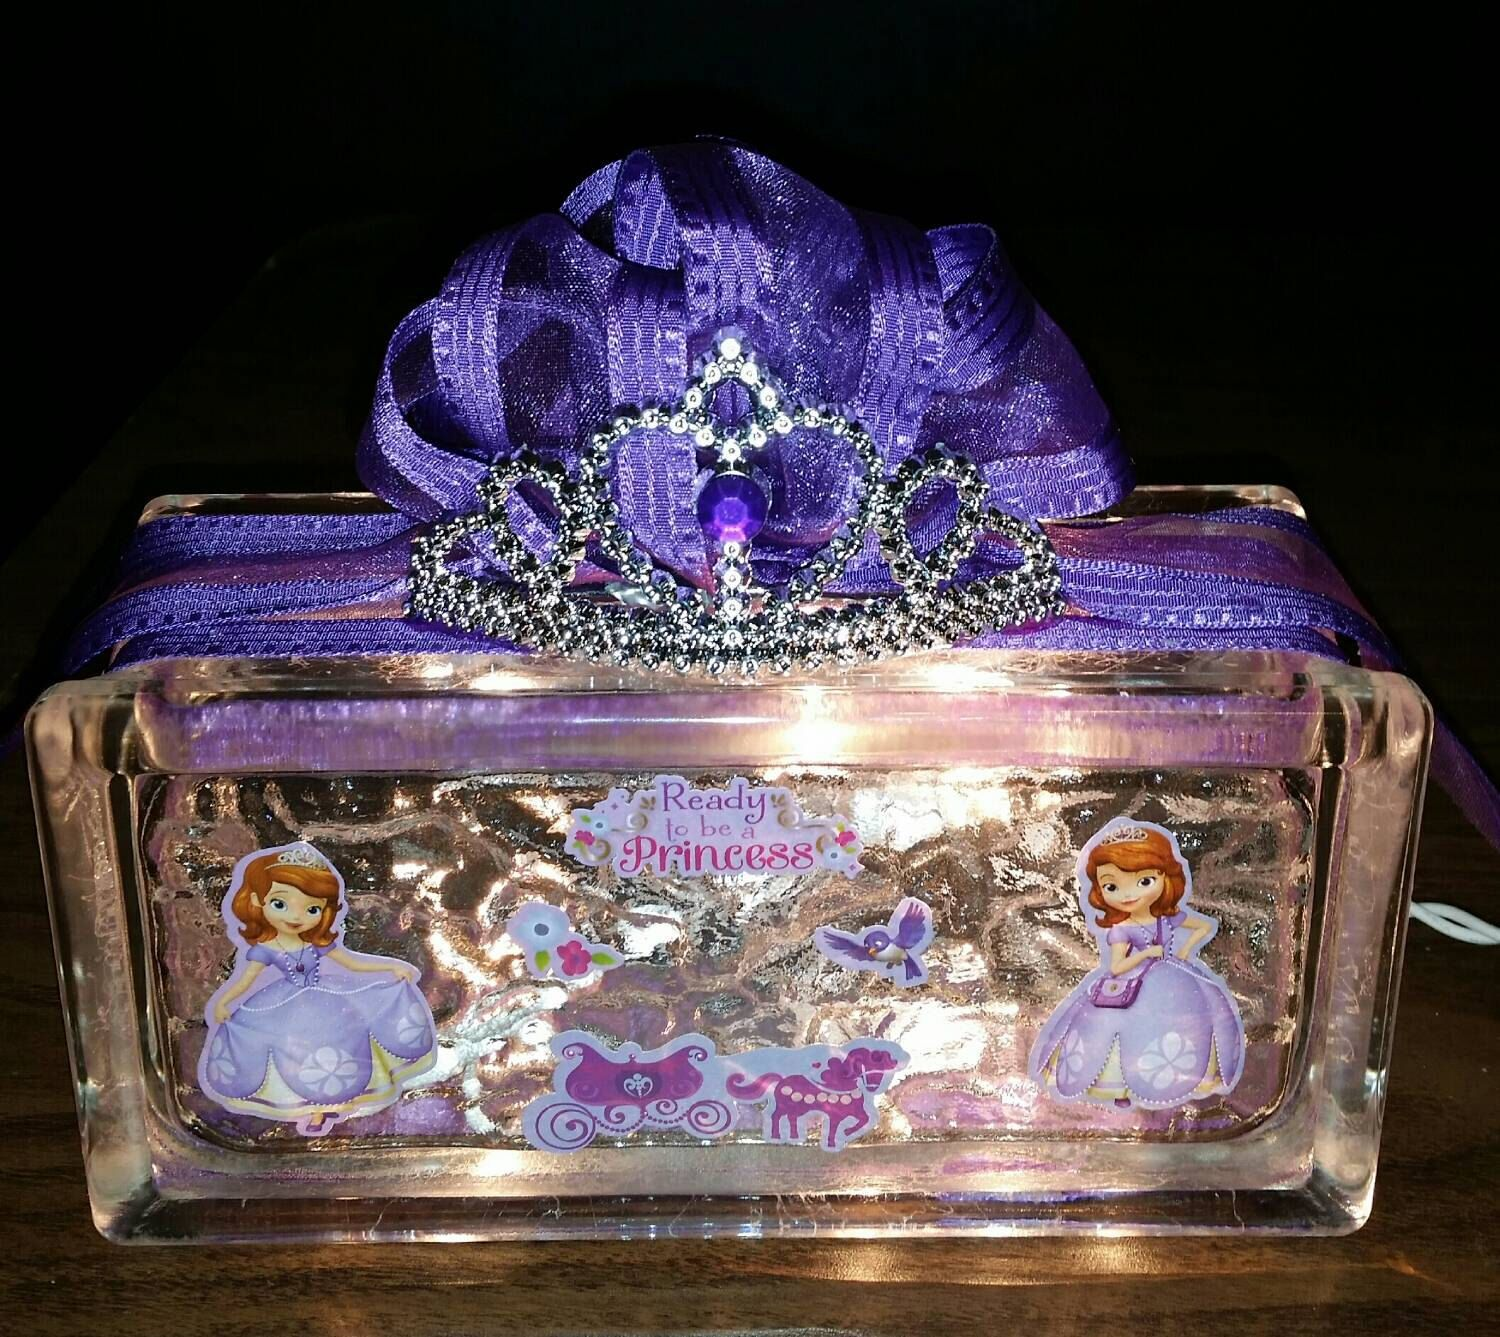 Kids Nightlight Princess Sofia The First Nightlight